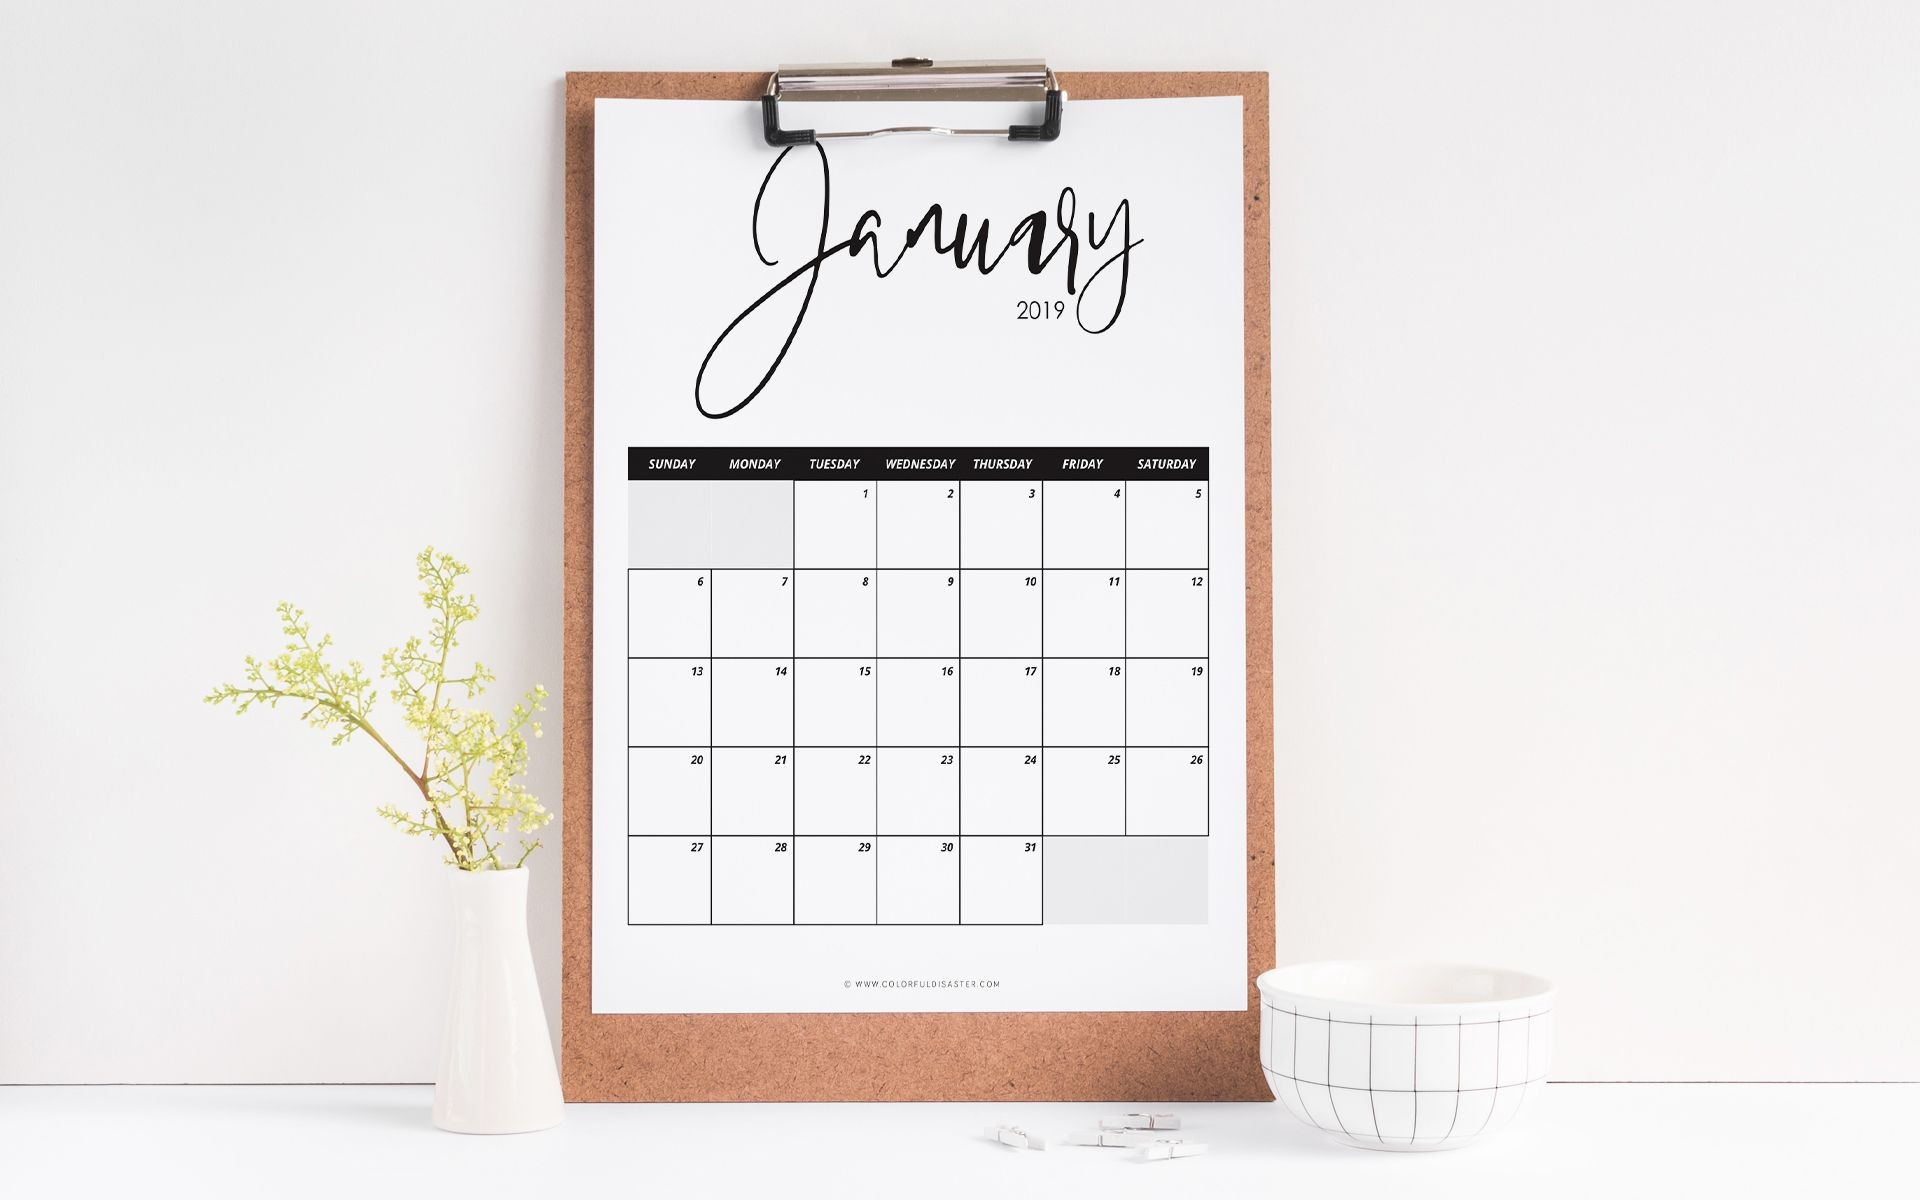 March 2019 Calendar Landscape Más Reciente 10 Stylish Free Printable Calendars for 2019 Of March 2019 Calendar Landscape Más Arriba-a-fecha Travel with the Lakeland Chamber the israel Adventure May 24